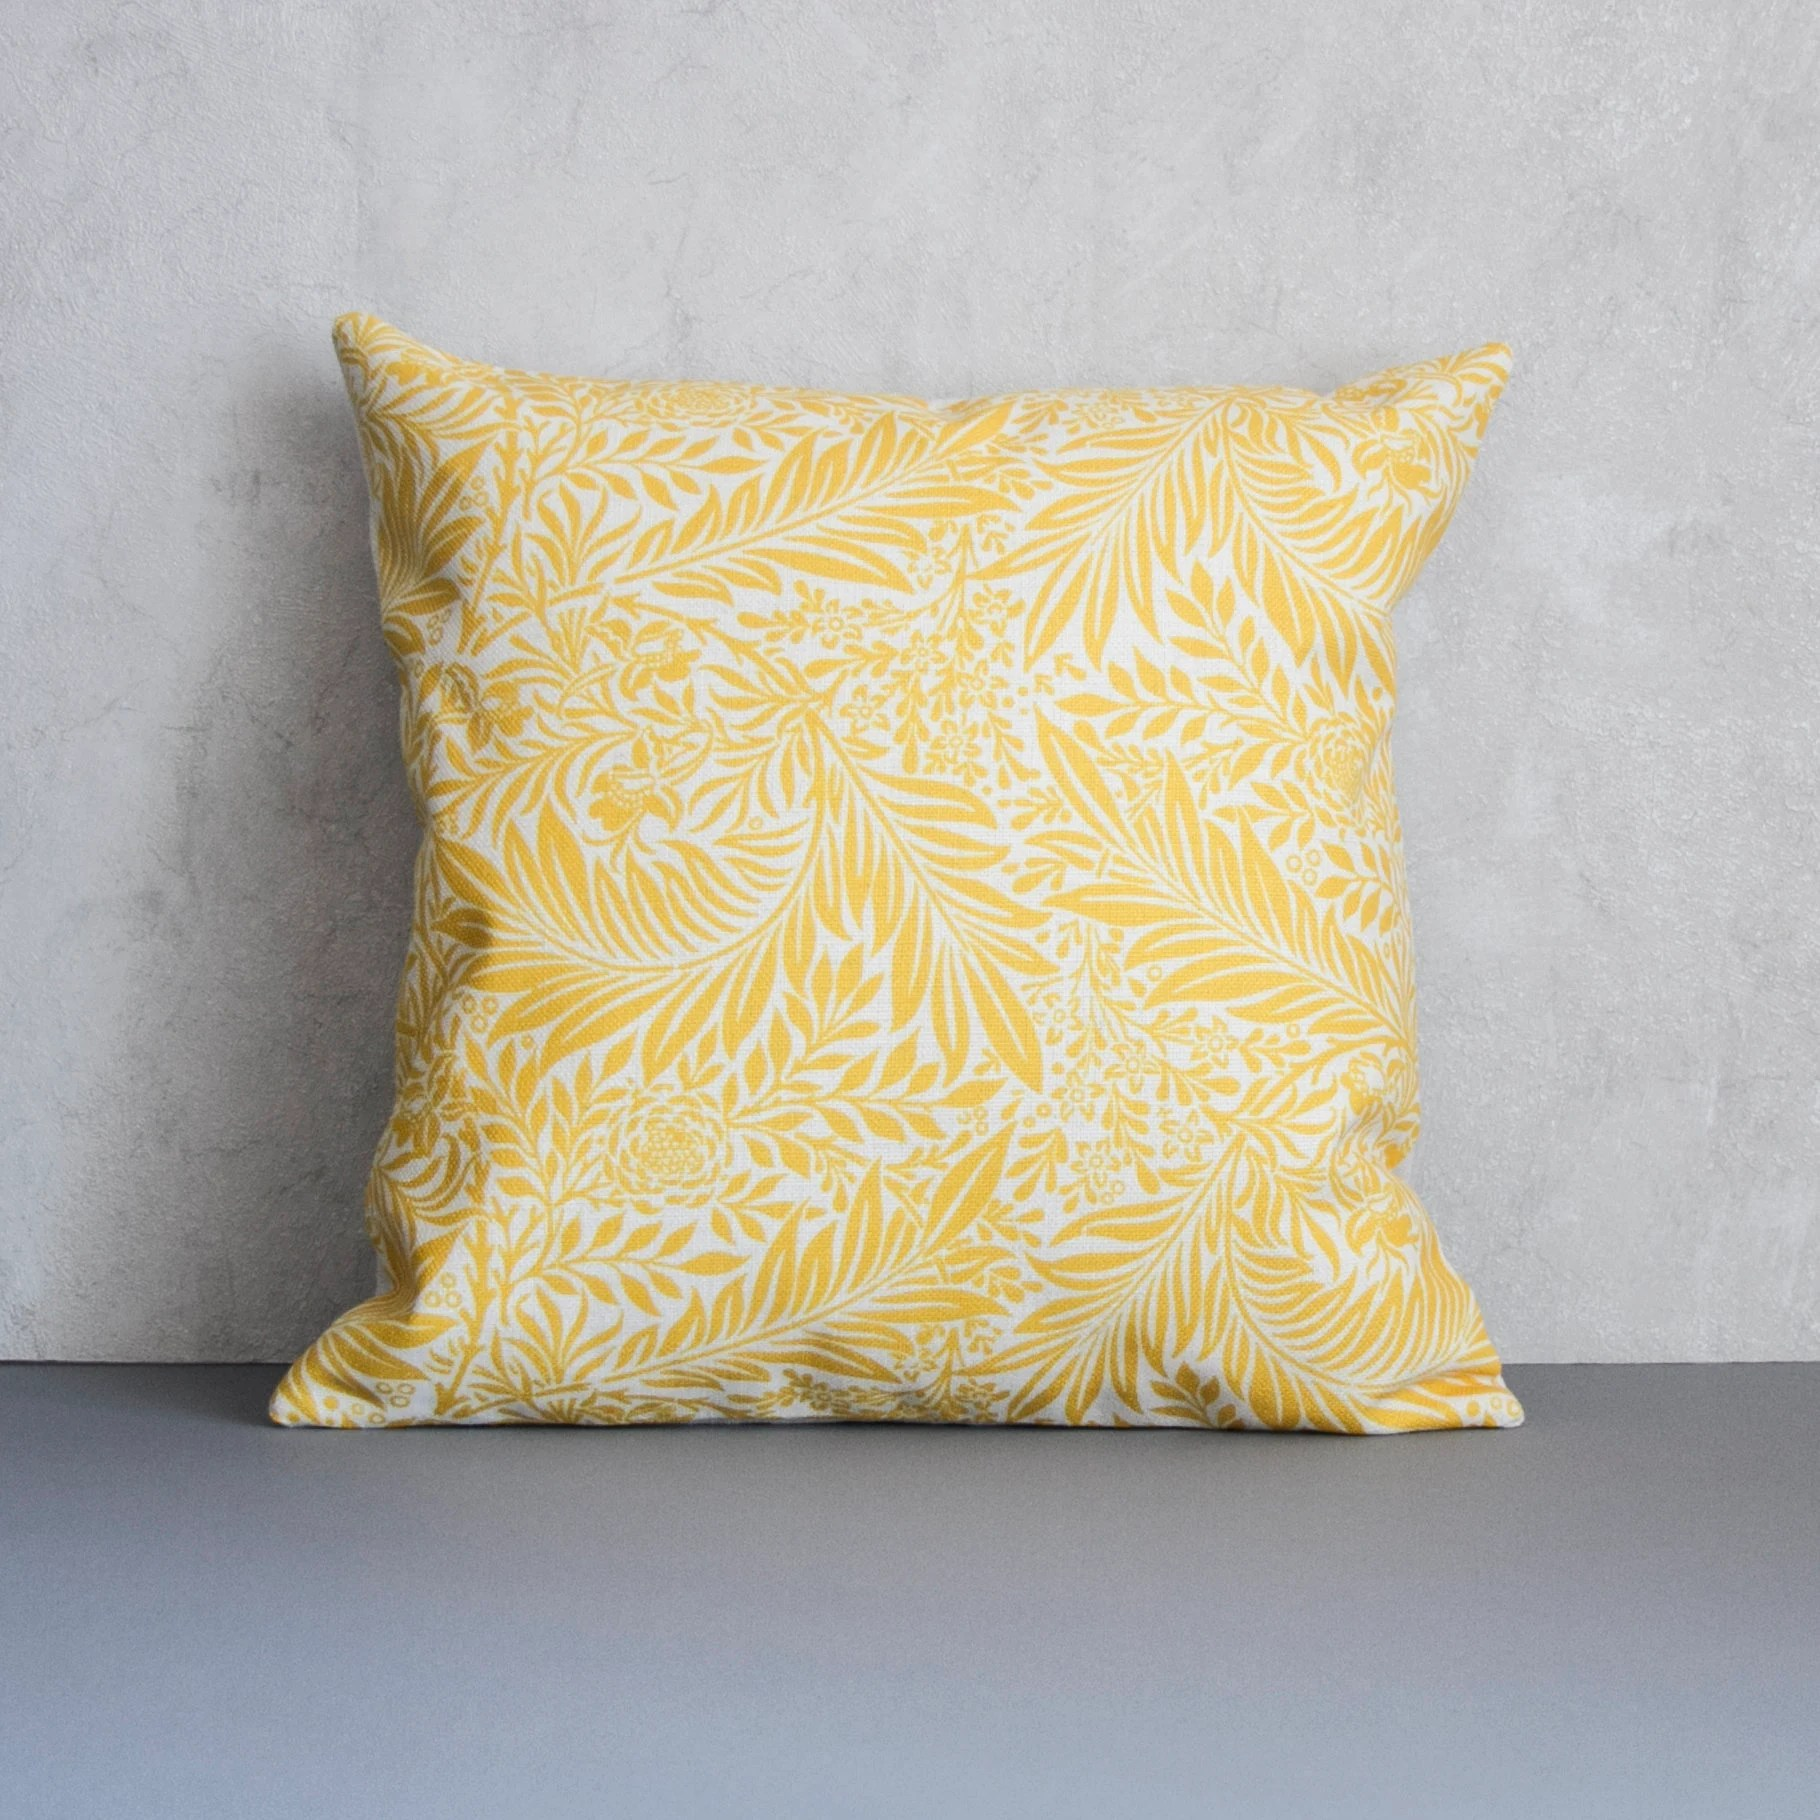 yellow pillow cover yellow floral pattern throw pillow flower pattern decorative pillow cover cushion cover